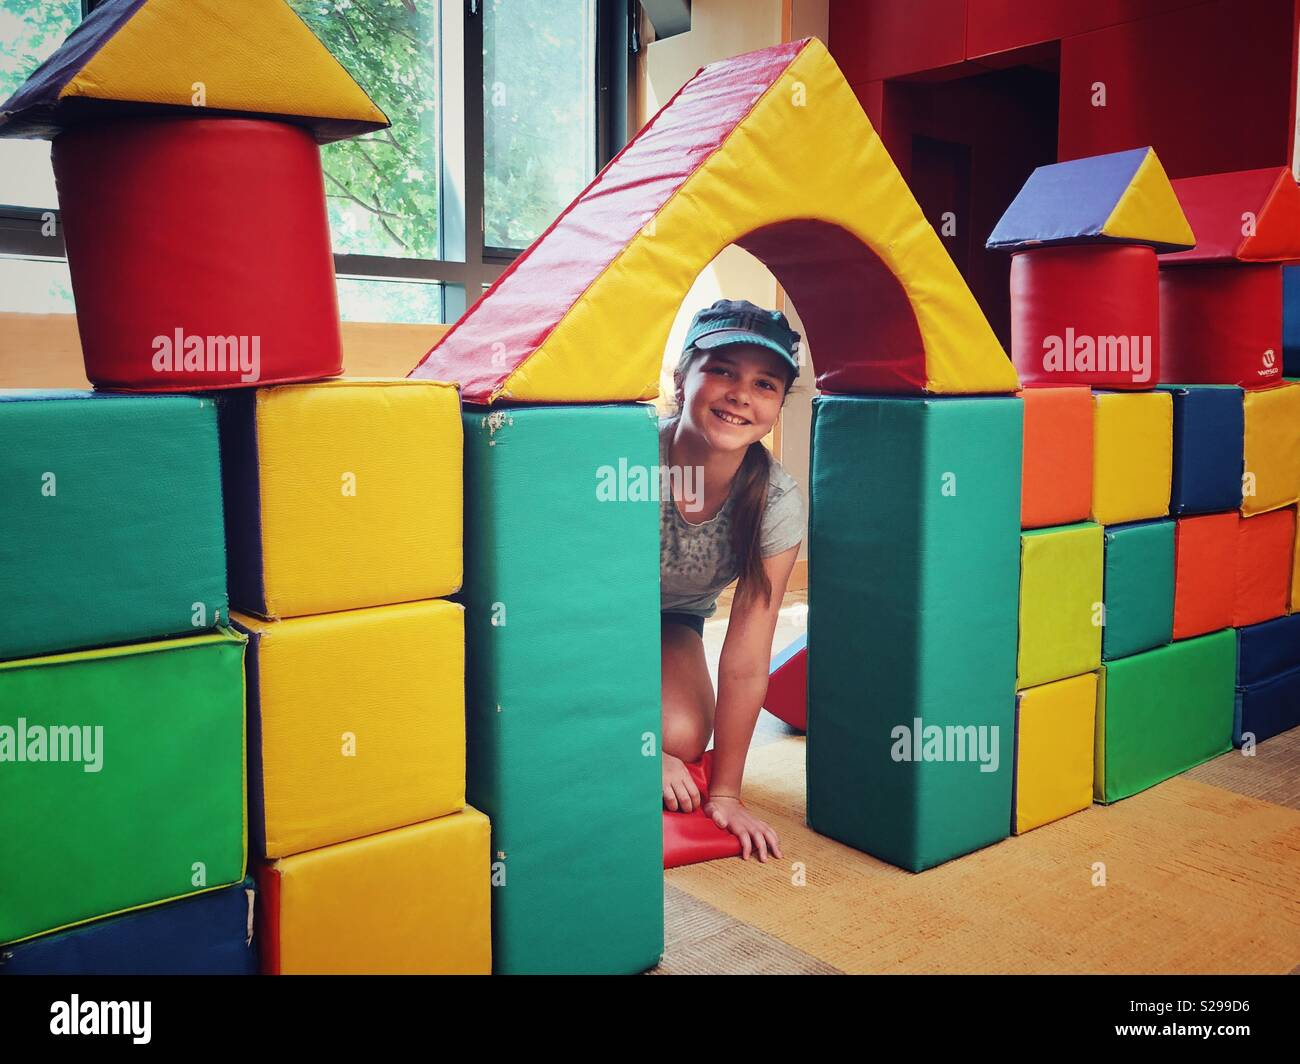 11 year old girl peeking through doorway of large block castle at an indoor play area - Stock Image